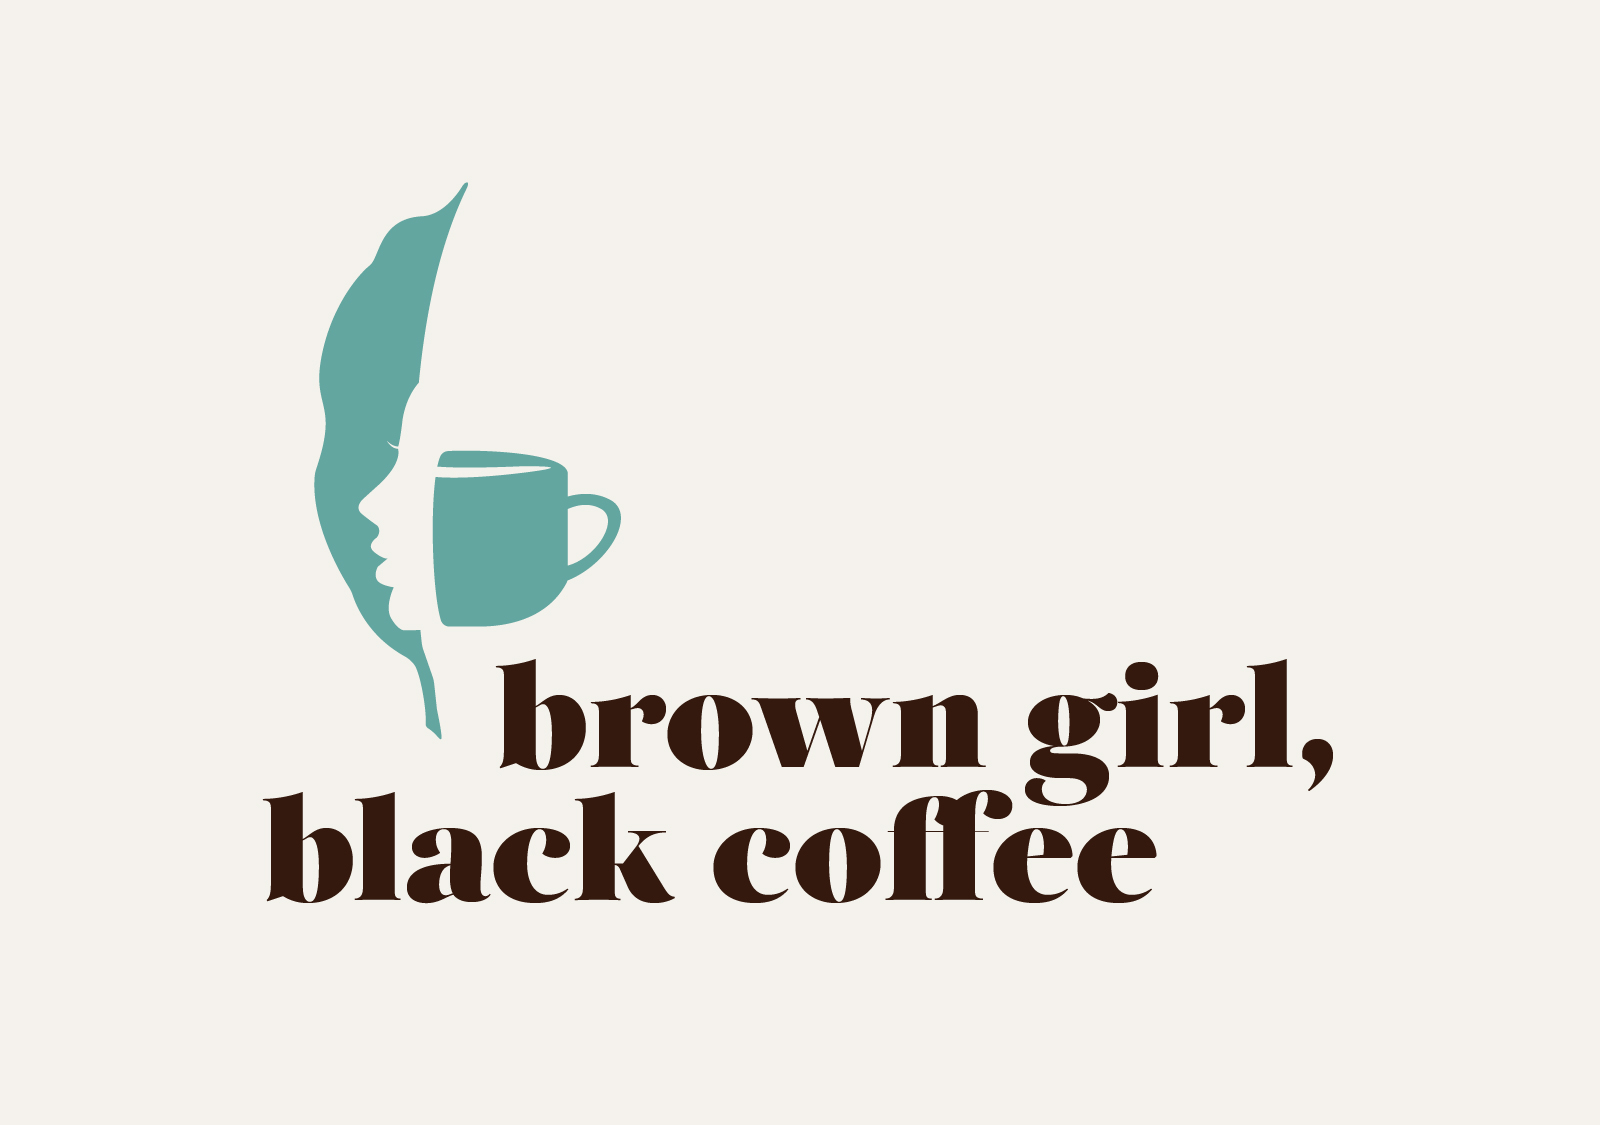 35-browngirlblackcoffee-color@3x.jpg